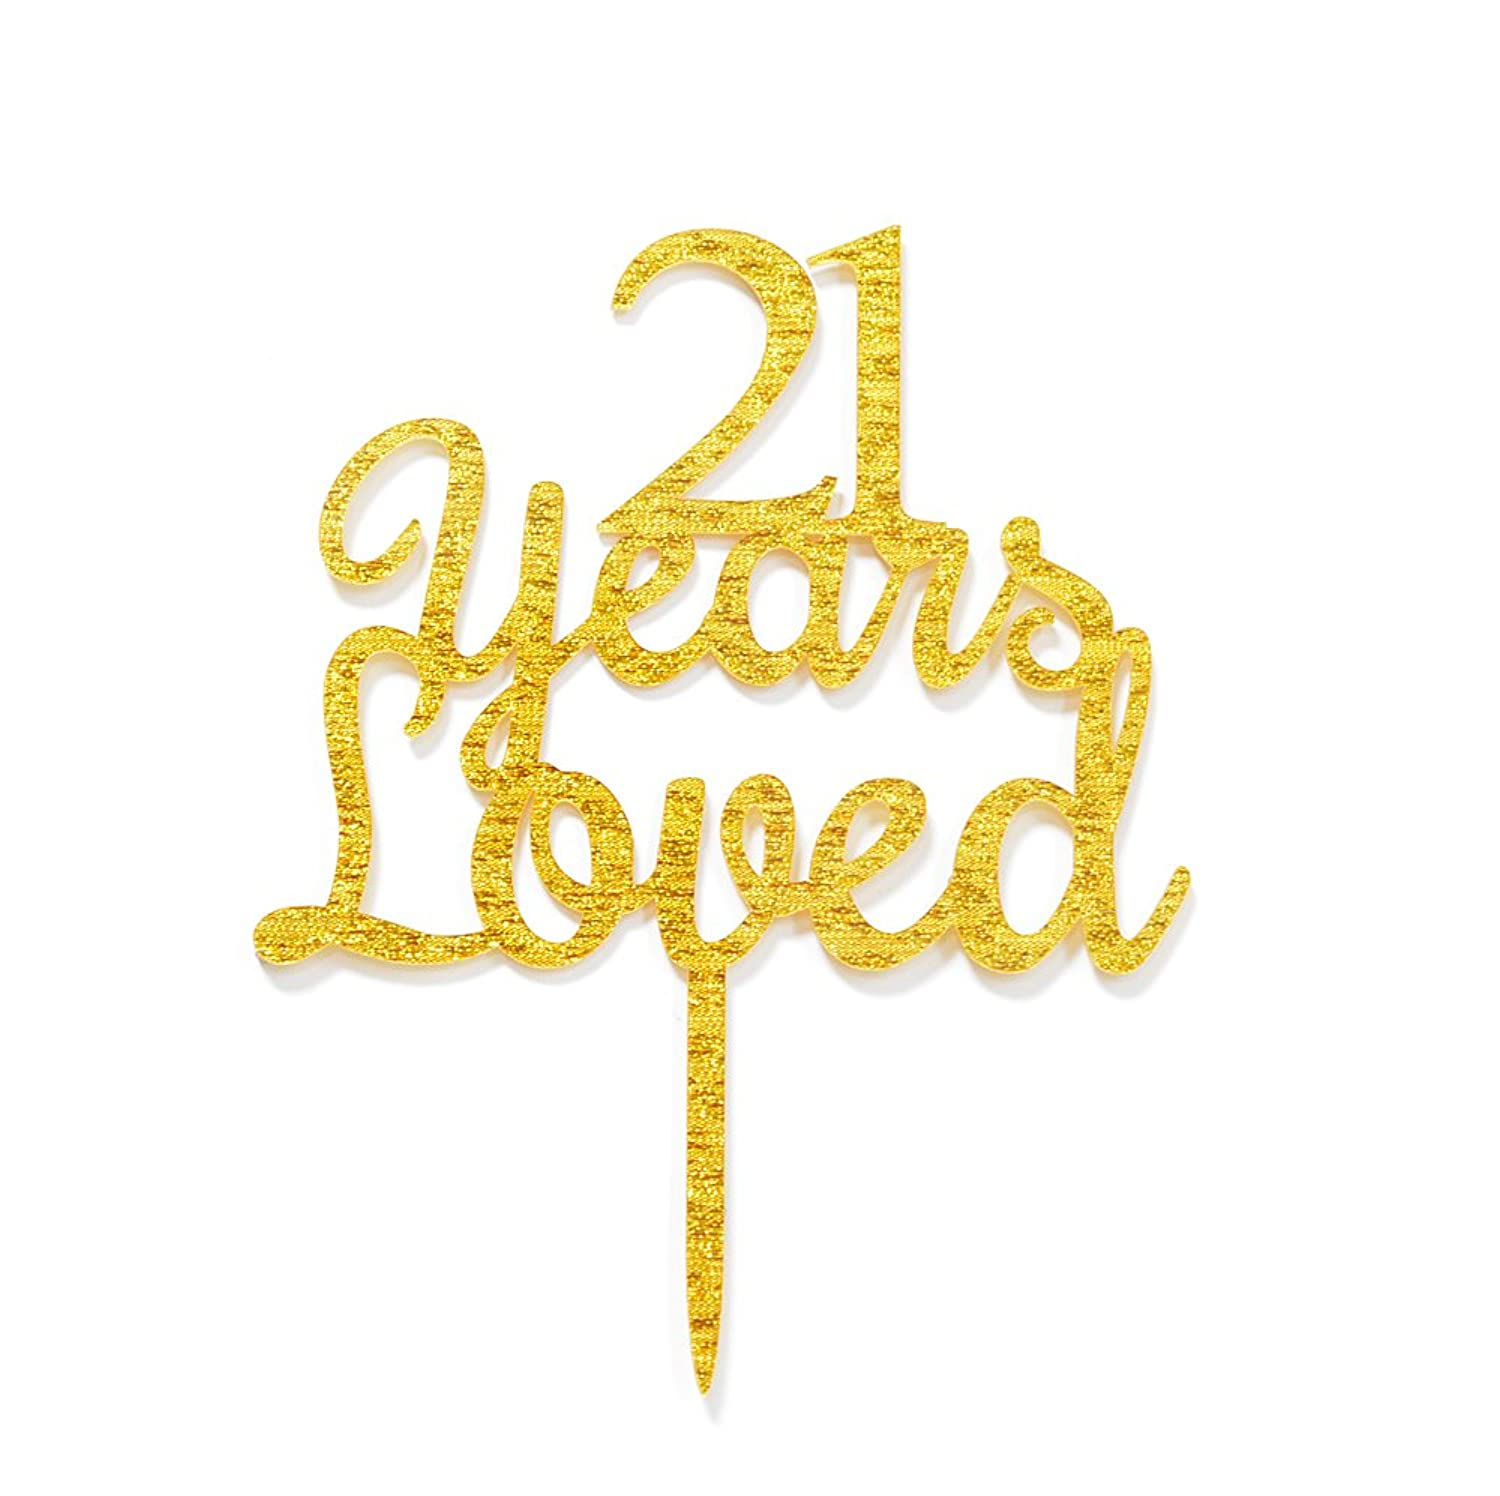 Qttier 21 Years Loved Cake Topper Happy 21st Birthday Anniversar Party Decoration Premium Quality Acrylic Gold jhqnnu4070017